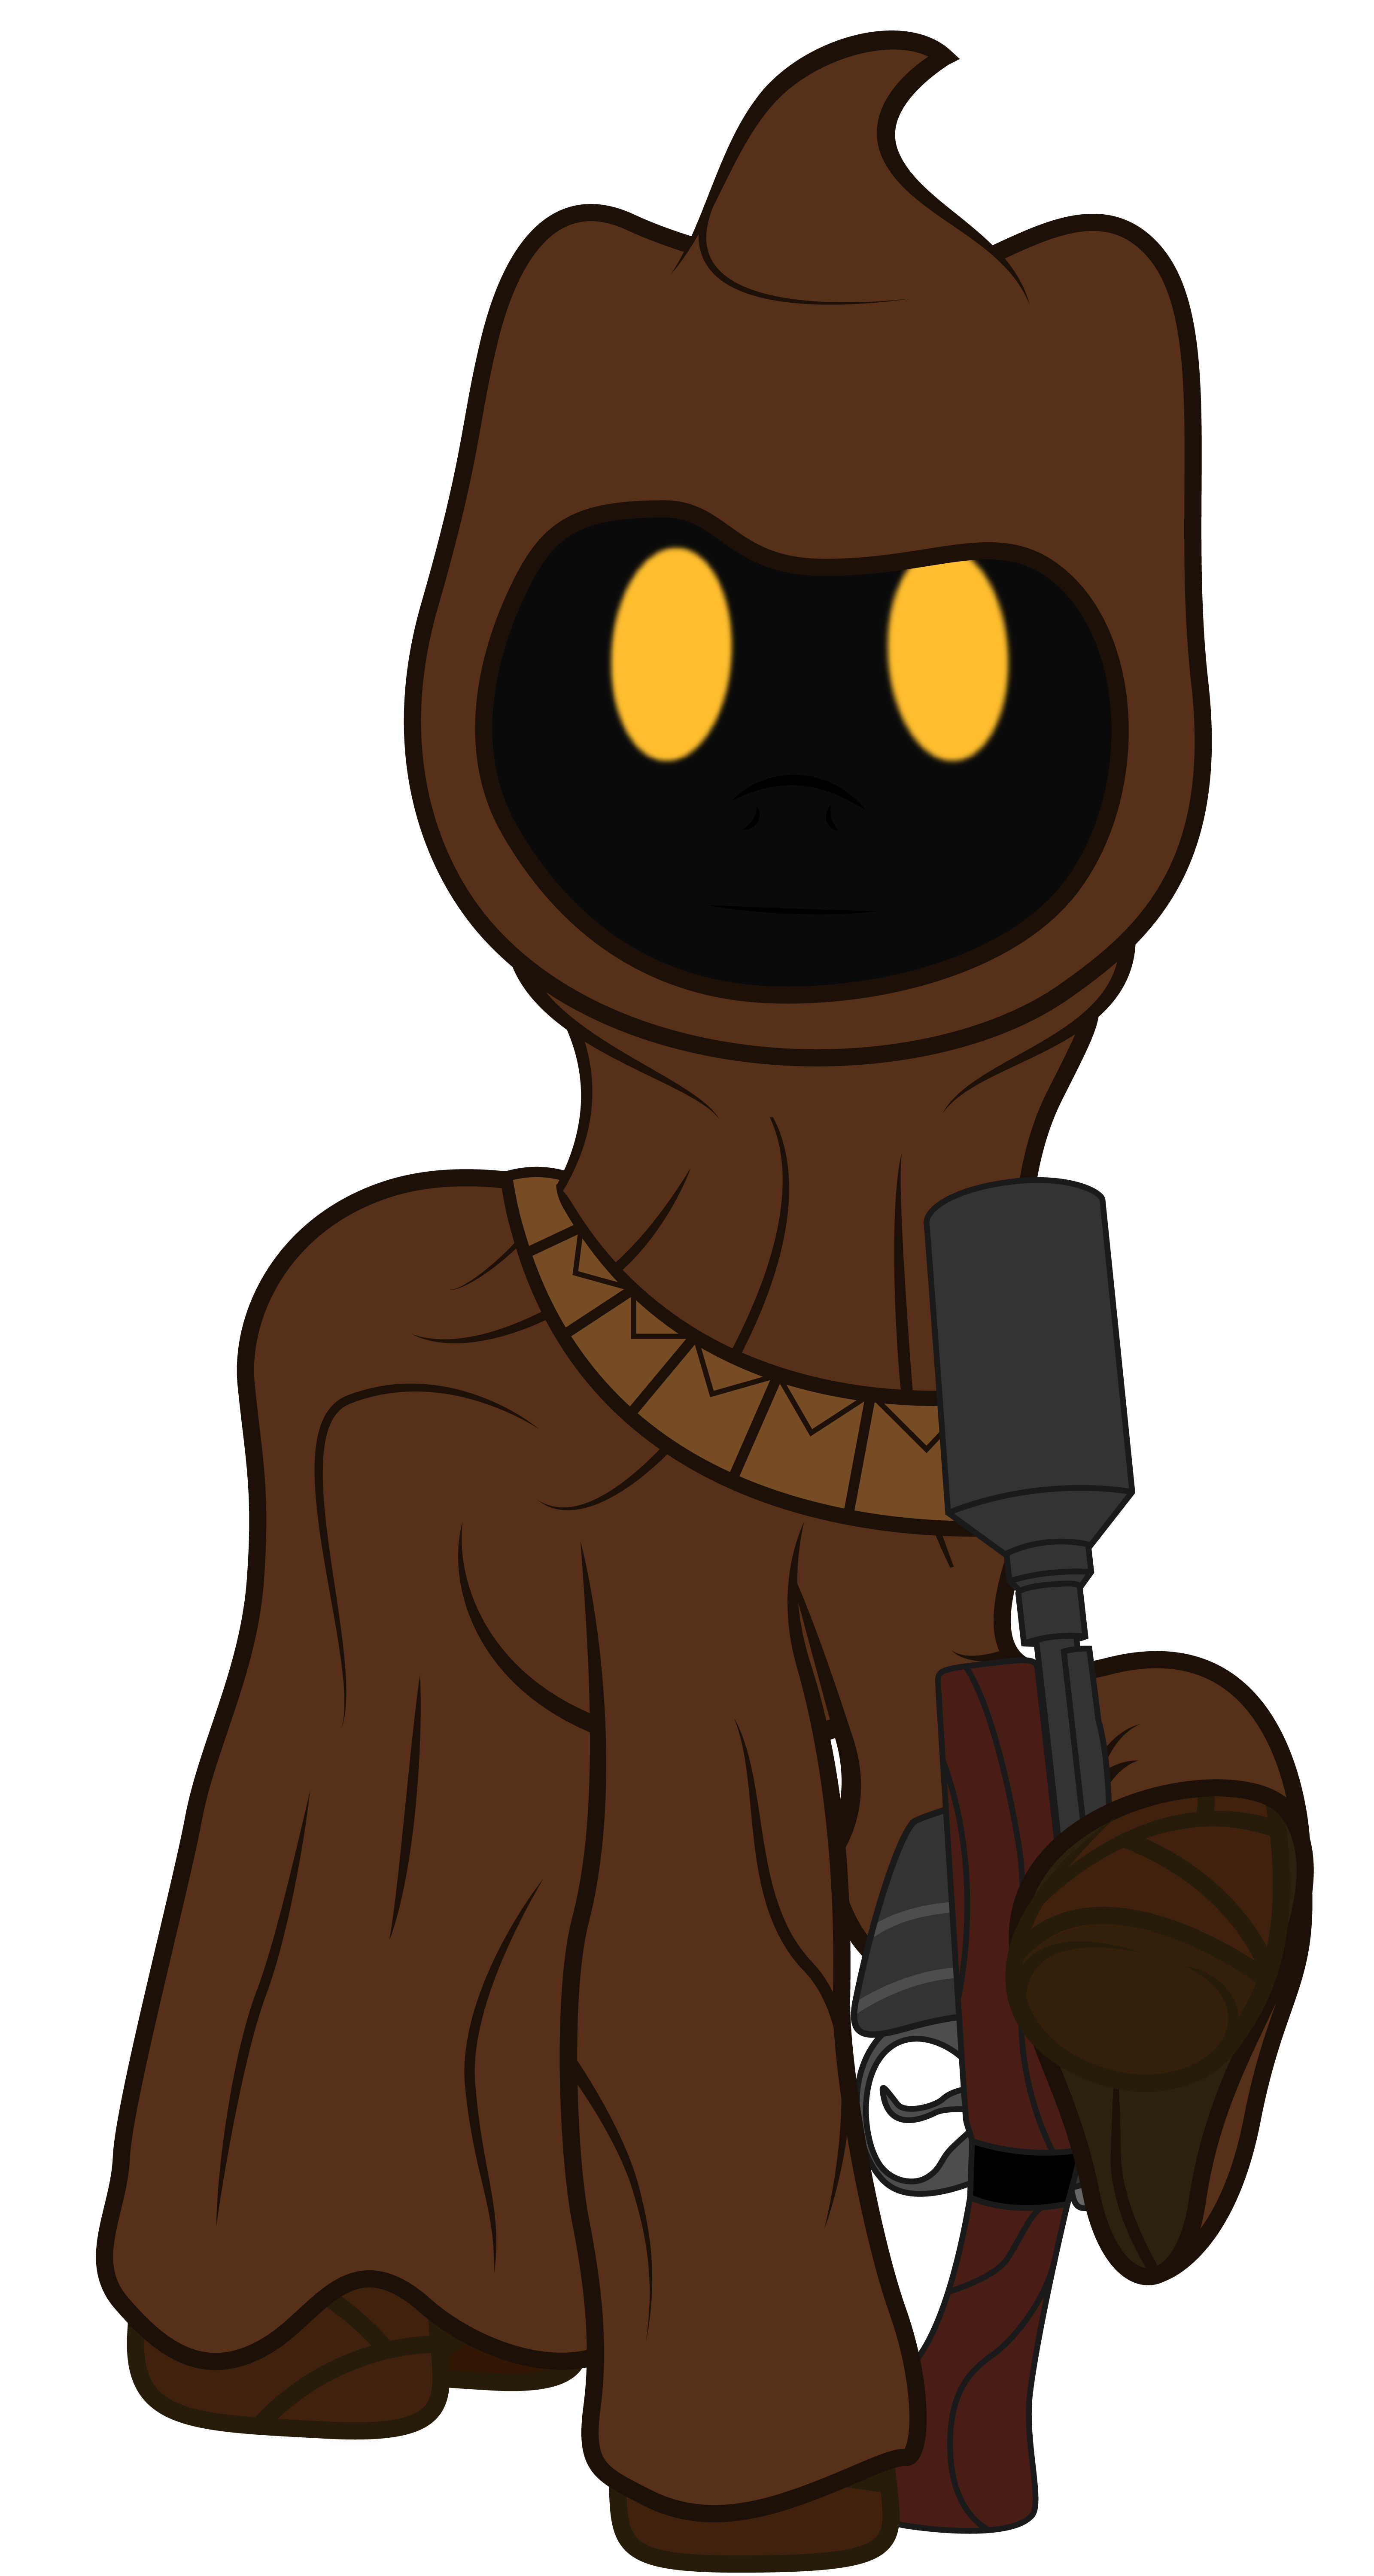 Star wars jawa clipart png free download 529005 - absurd res, artist:yanoda, jawa, ponified, safe, simple ... png free download